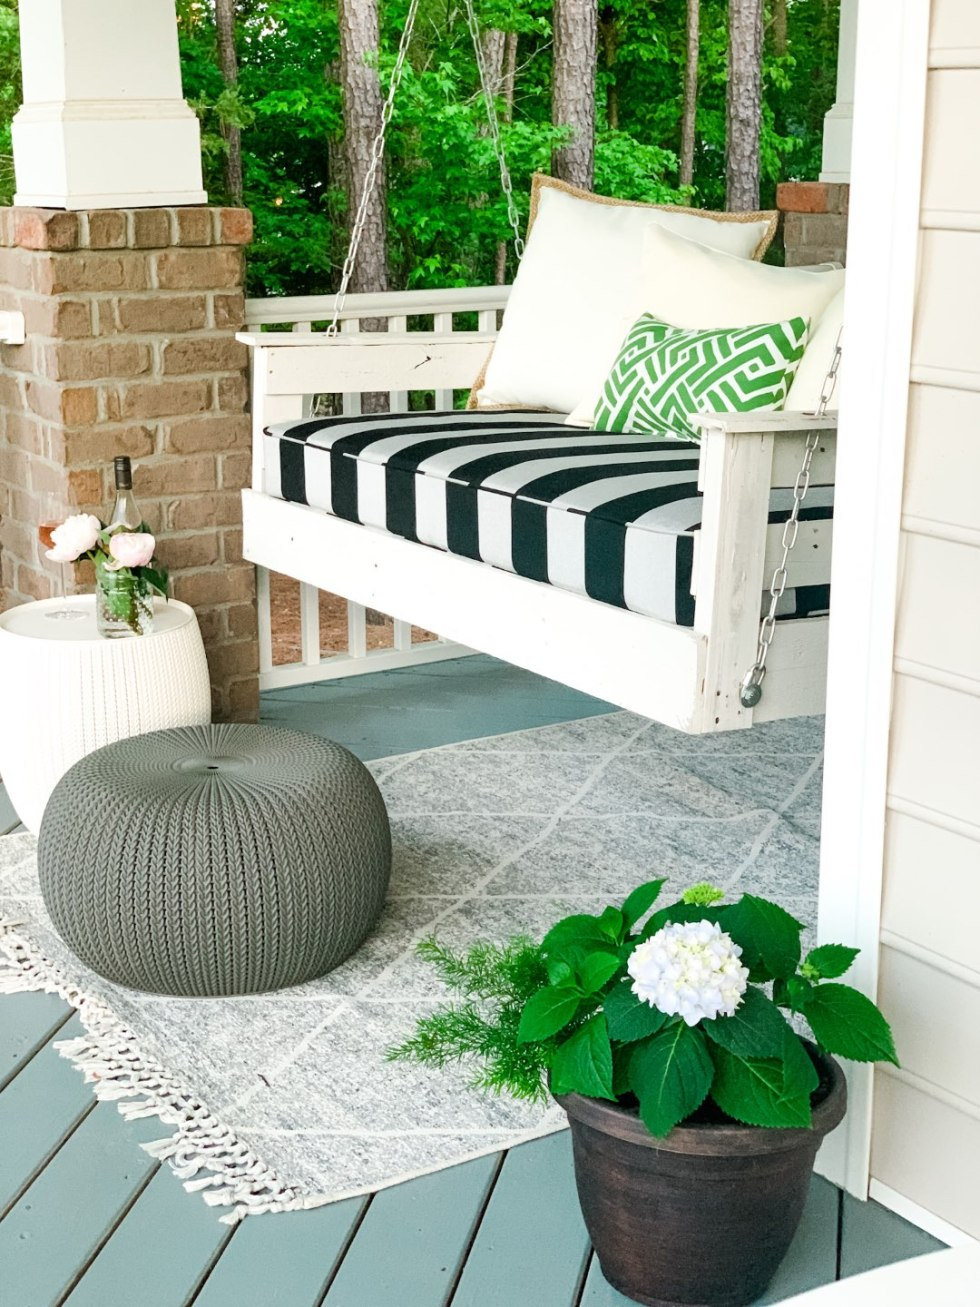 3 Years in Our Ranch: Home Updates - I'm Fixin' To - @imfixintoblog |Home Updates by popular NC life and style blog, I'm Fixin' To: image of a front porch decorated with a white porch swing, grey and white rug, potted plant, and grey ottoman.